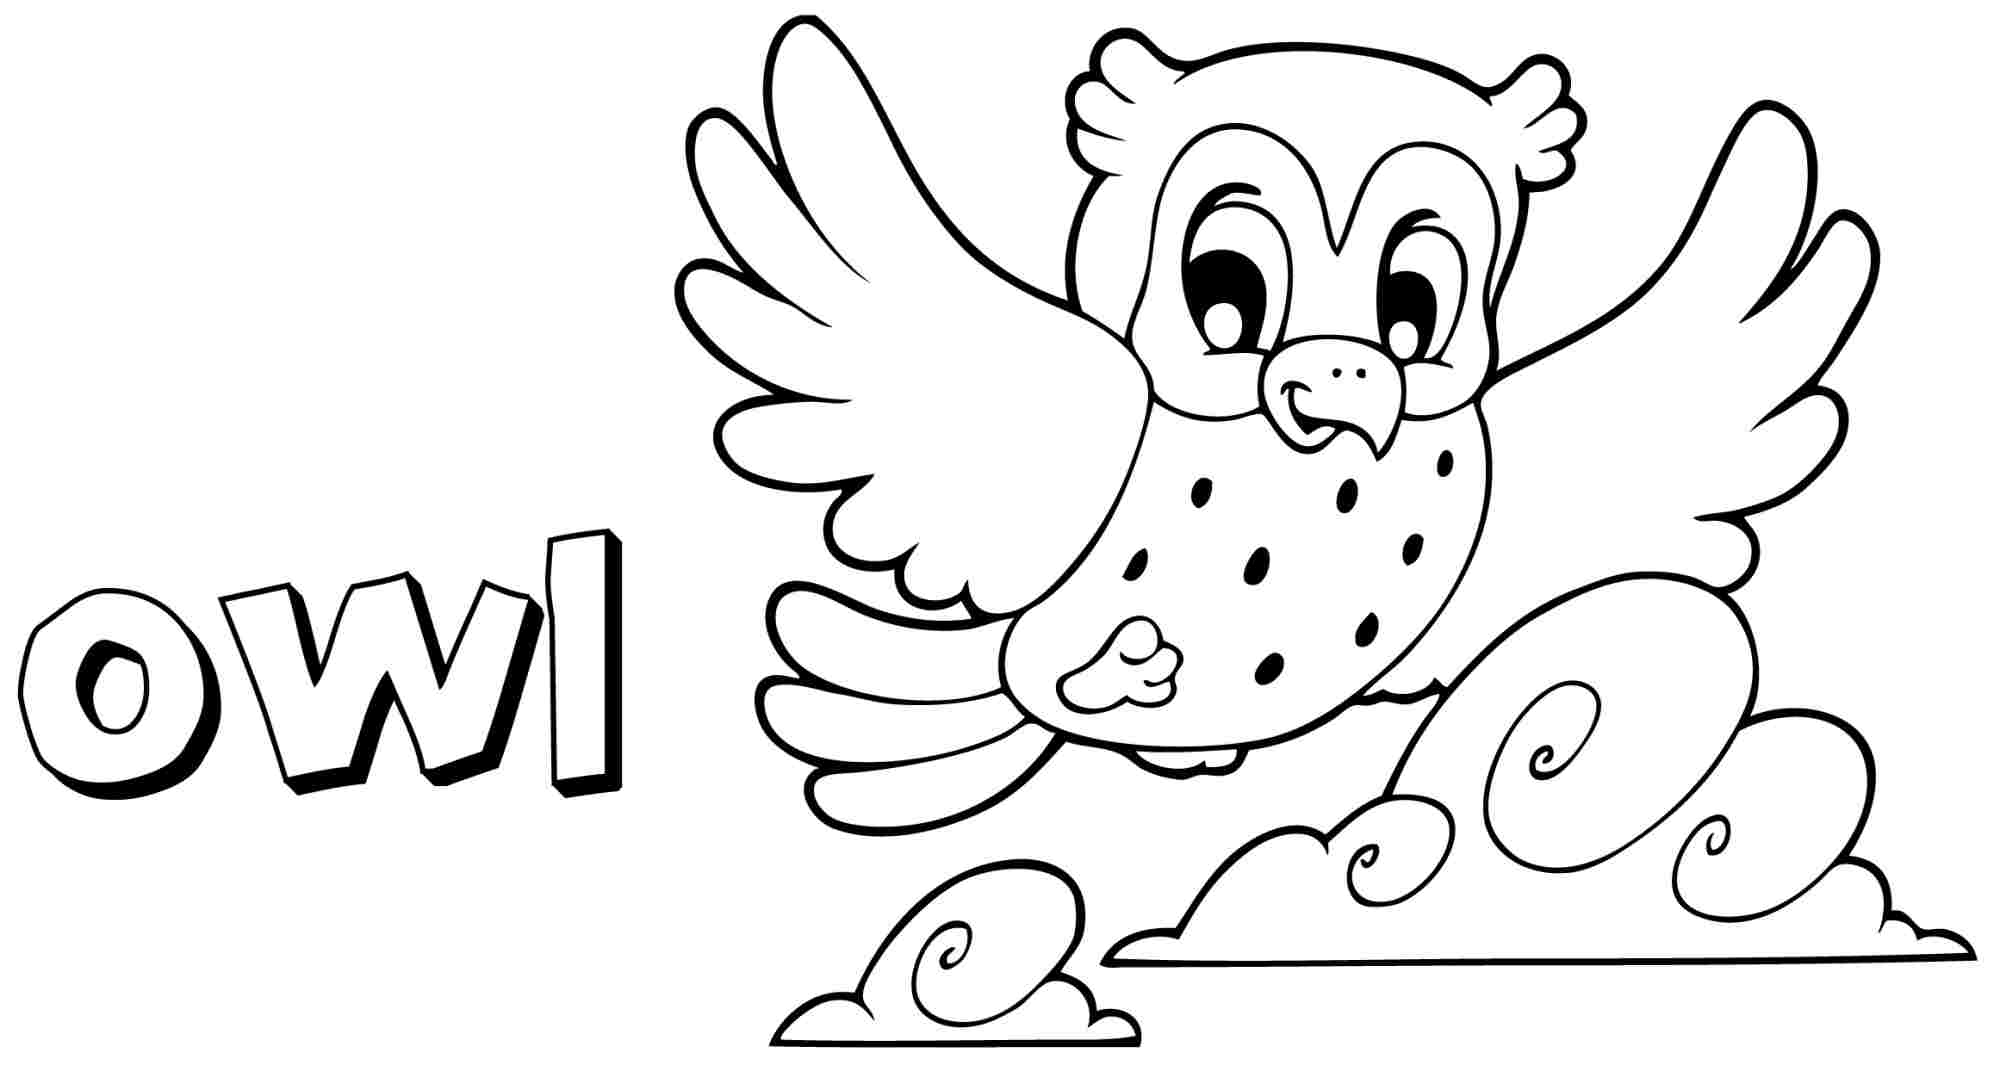 Owl coloring pages free - Free Owl Coloring Pages Image 21 Voteforverde Com